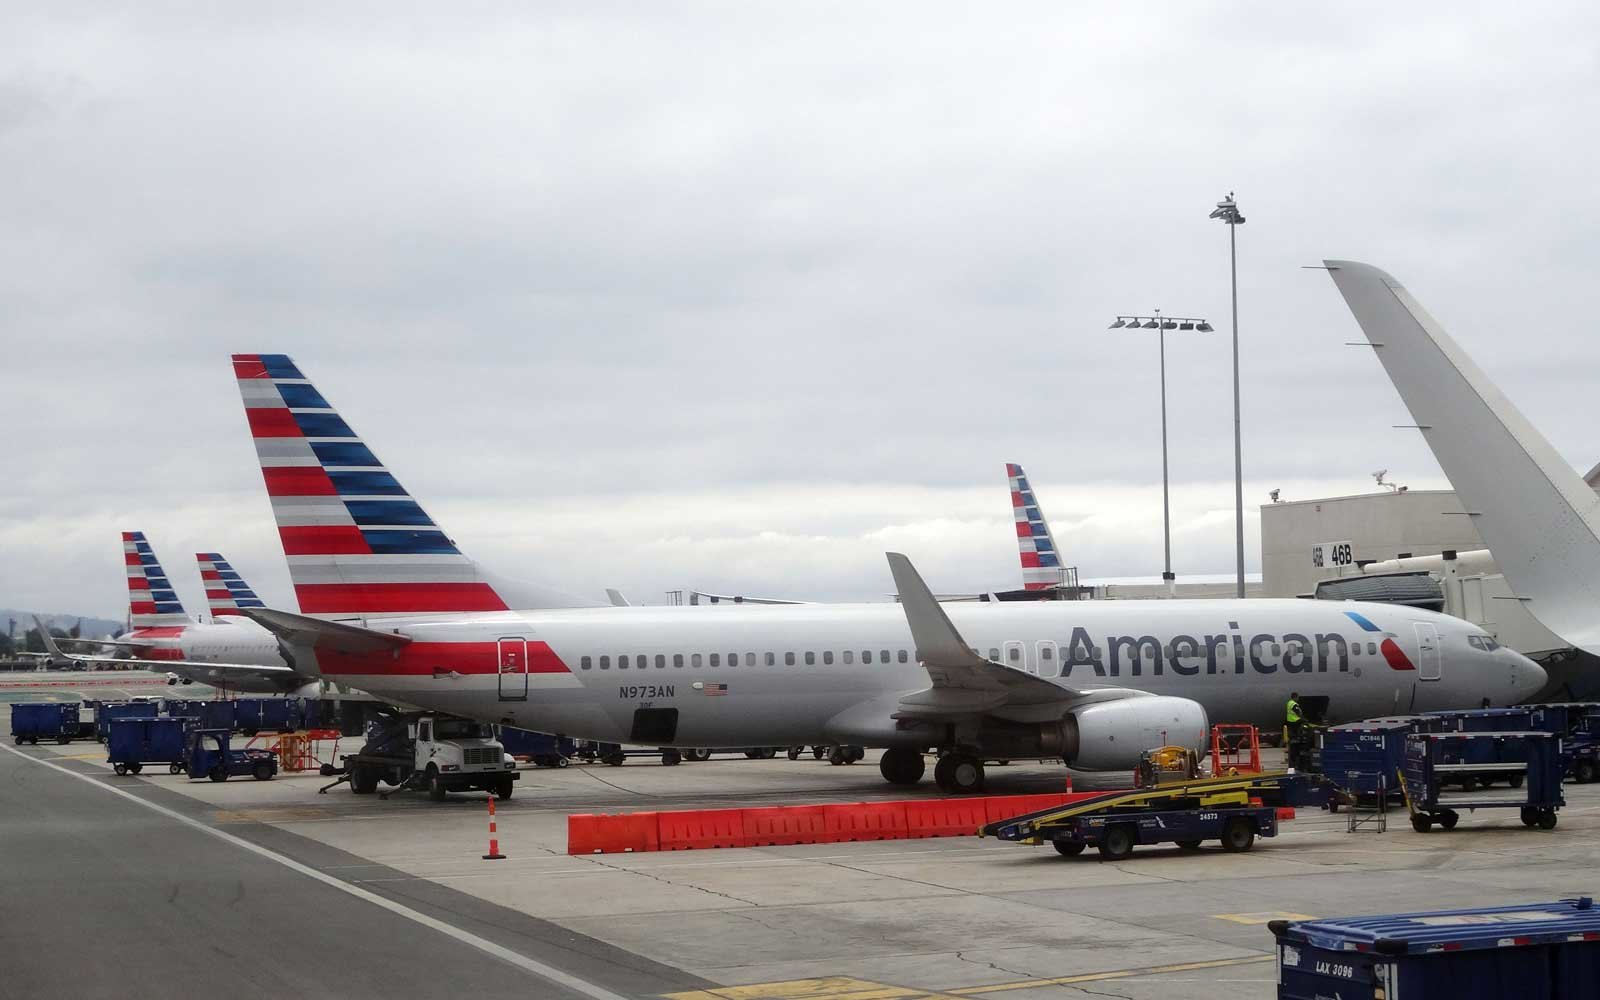 American Airlines is partnering with Blade to offer helicopter transfers to the airport.